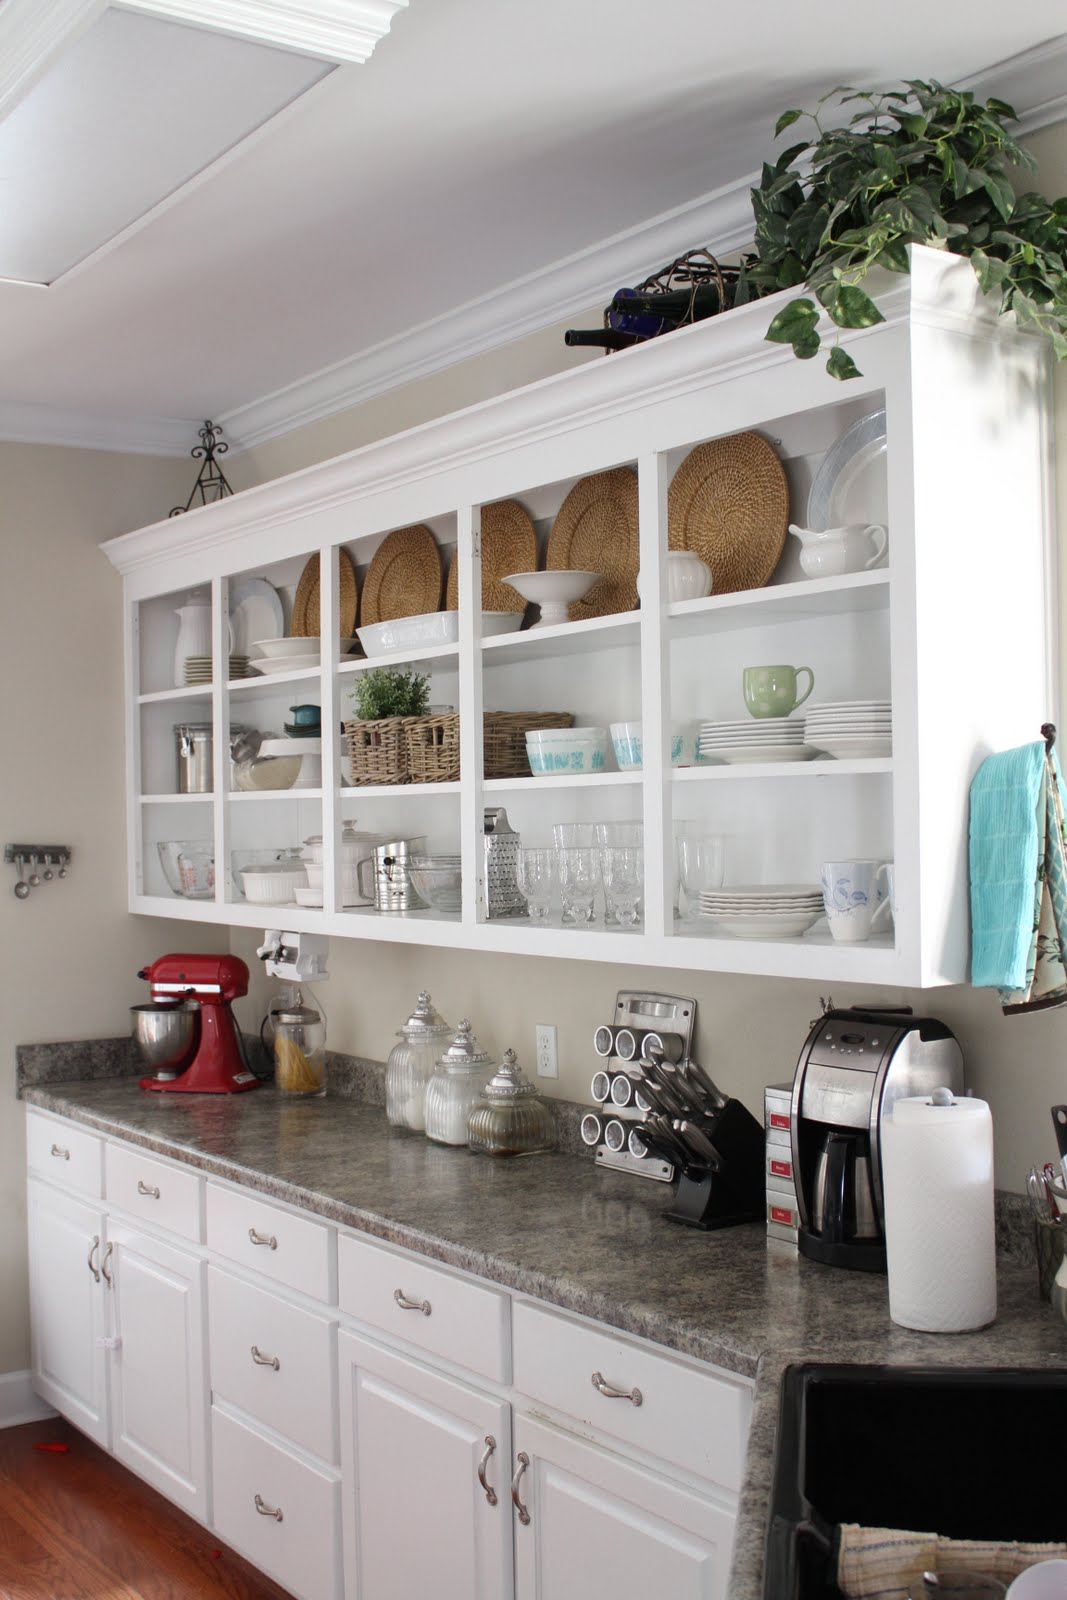 kitchen wall shelving units cabinets shelves lack of progress report swoon